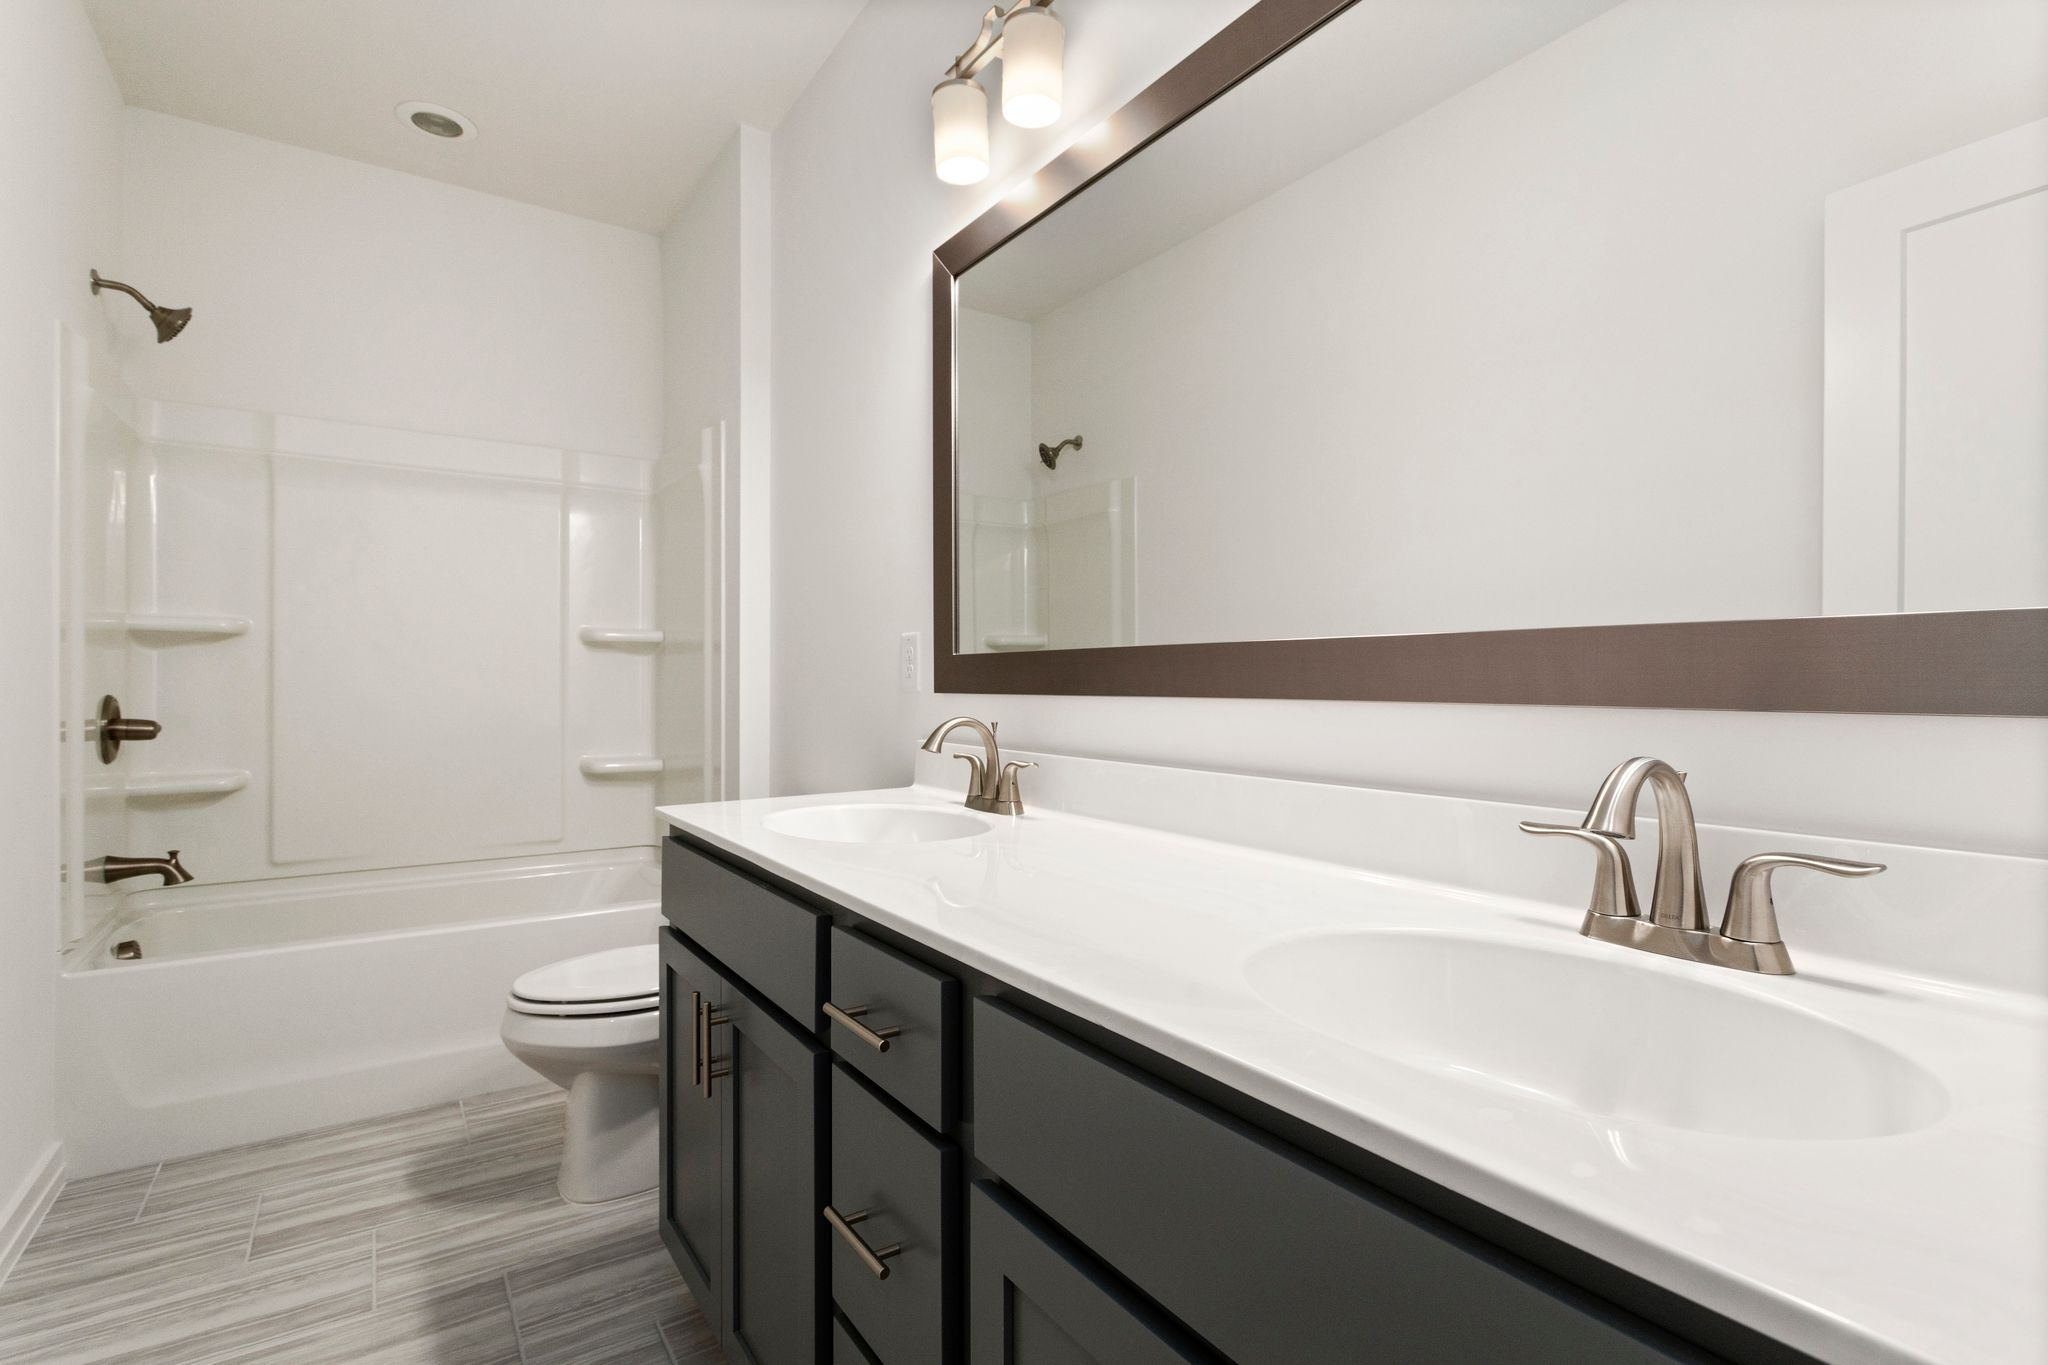 Bathroom featured in the Abbott By Minerva Homes in Atlanta, GA